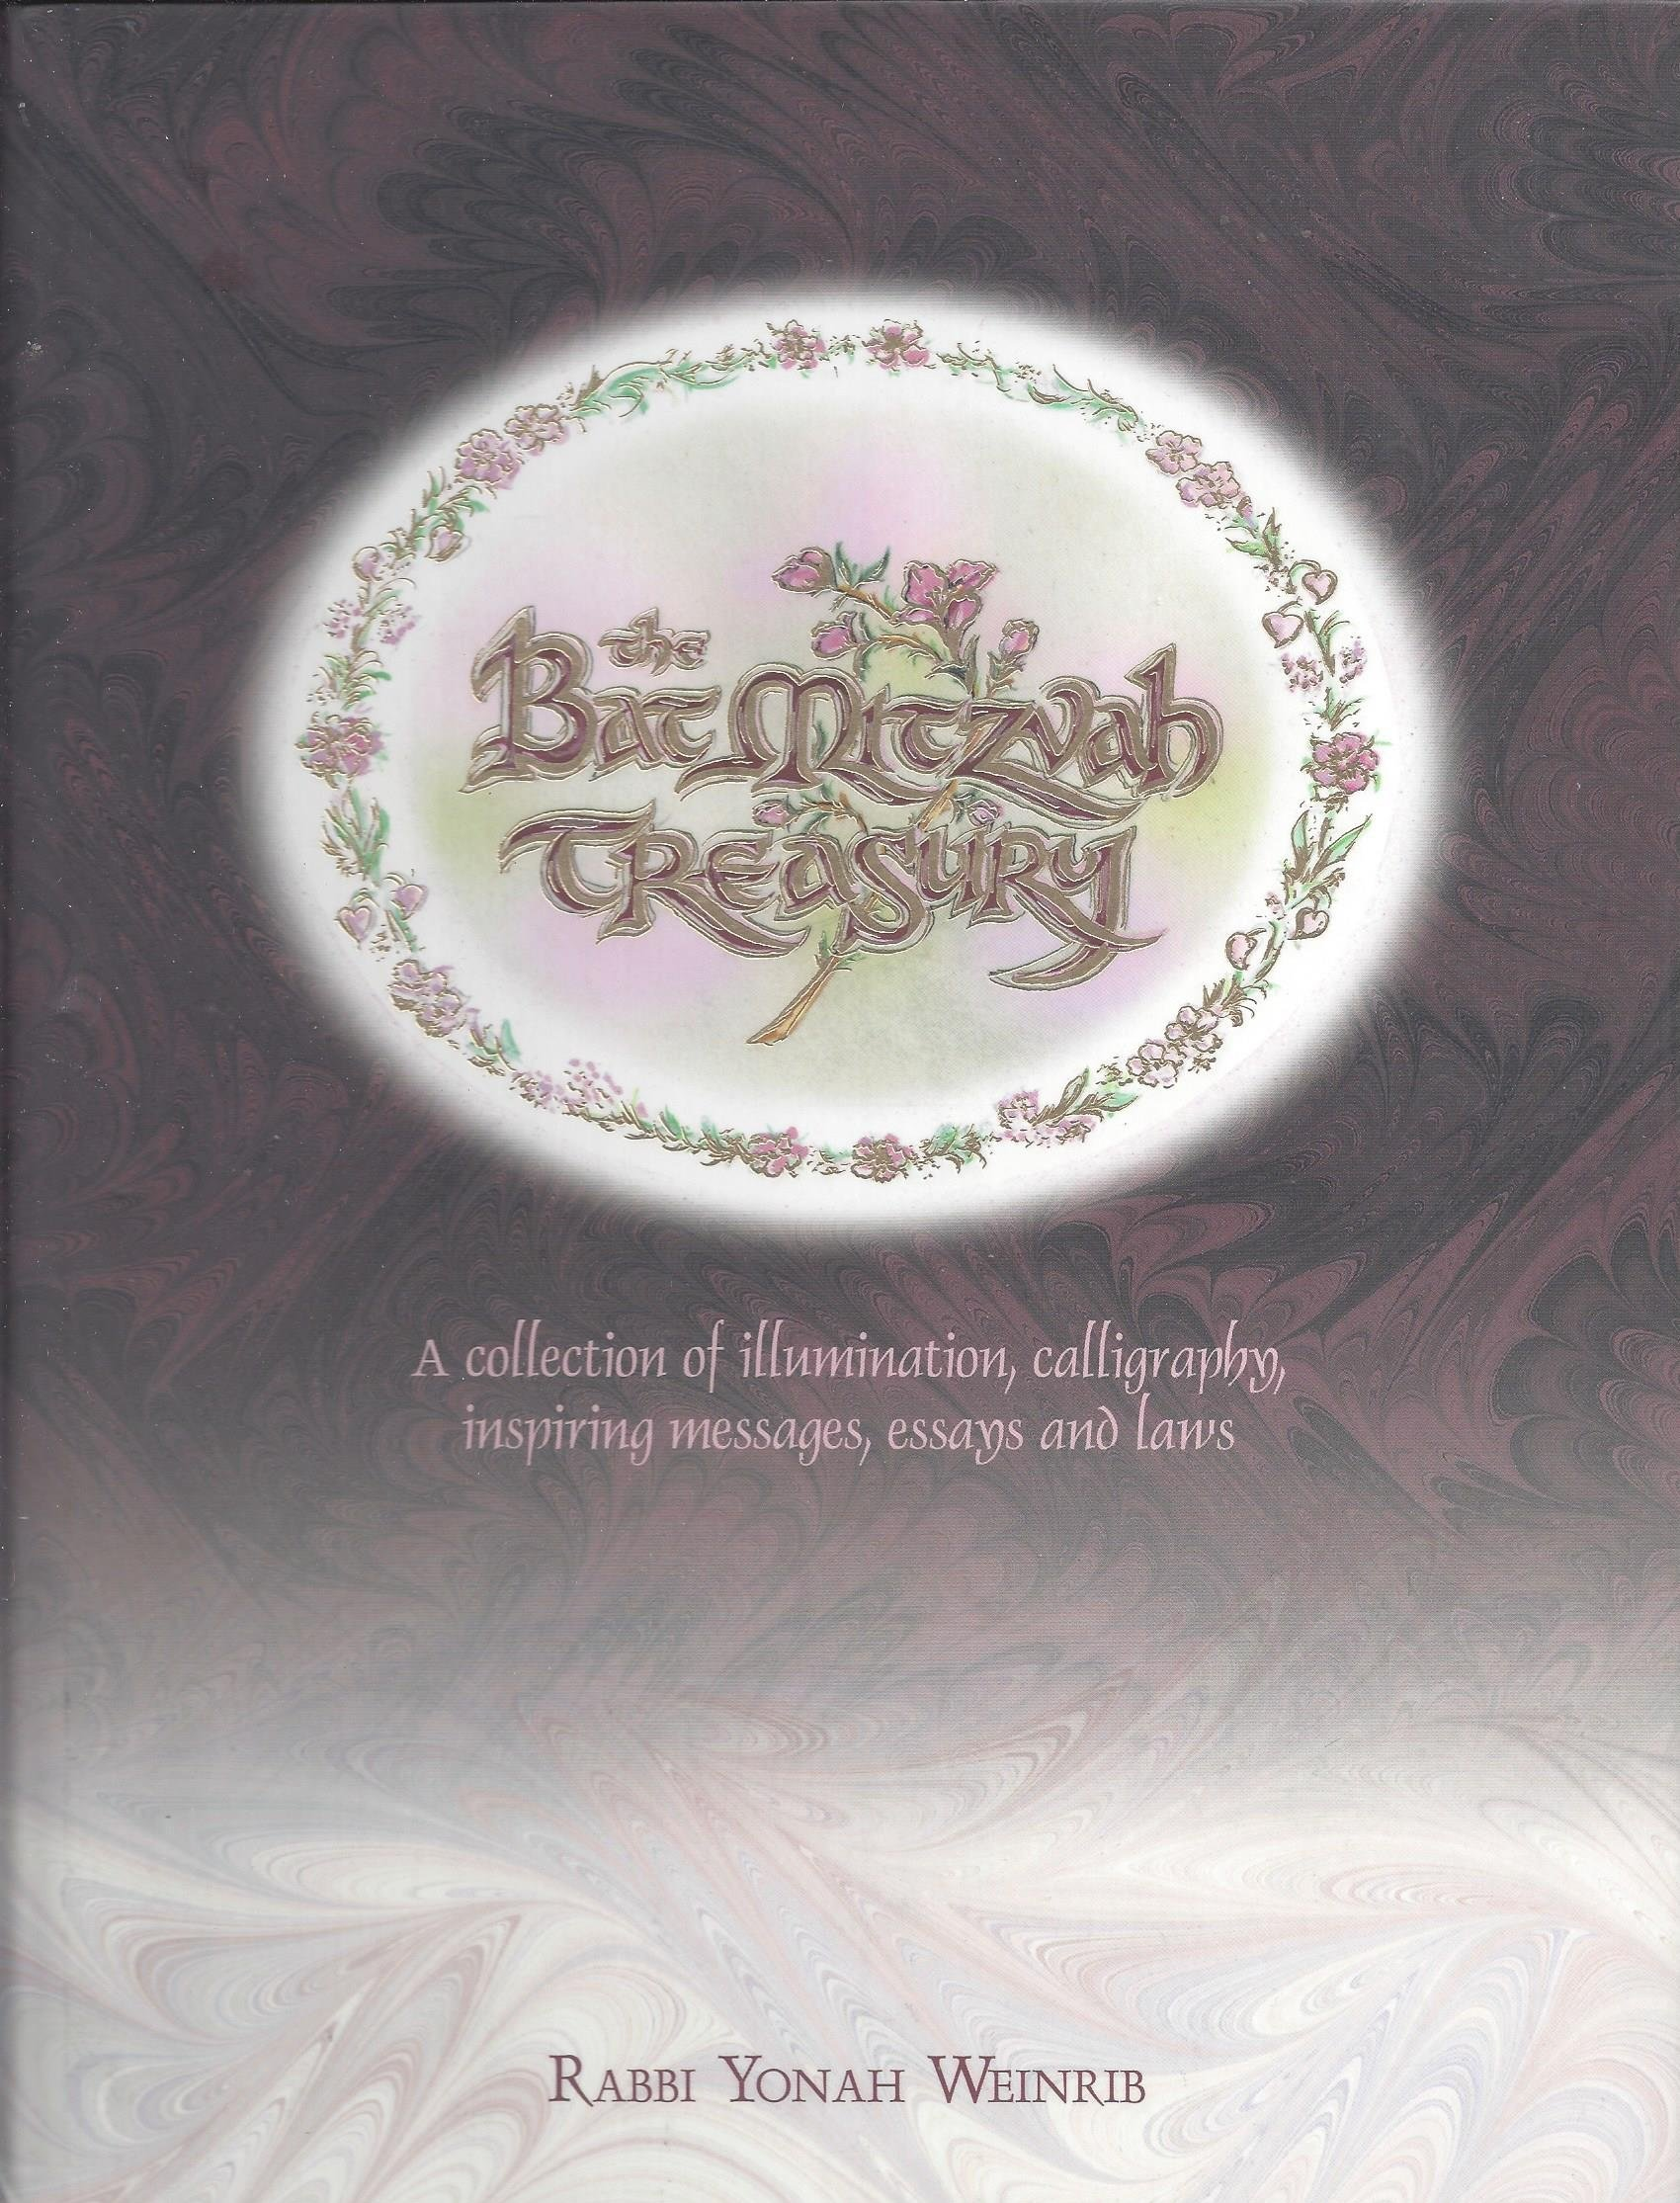 the bat mitzvah treasury a collection of illumination the bat mitzvah treasury a collection of illumination calligraphy inspiring messages essays and laws yonah weinrib 9781578193110 com books